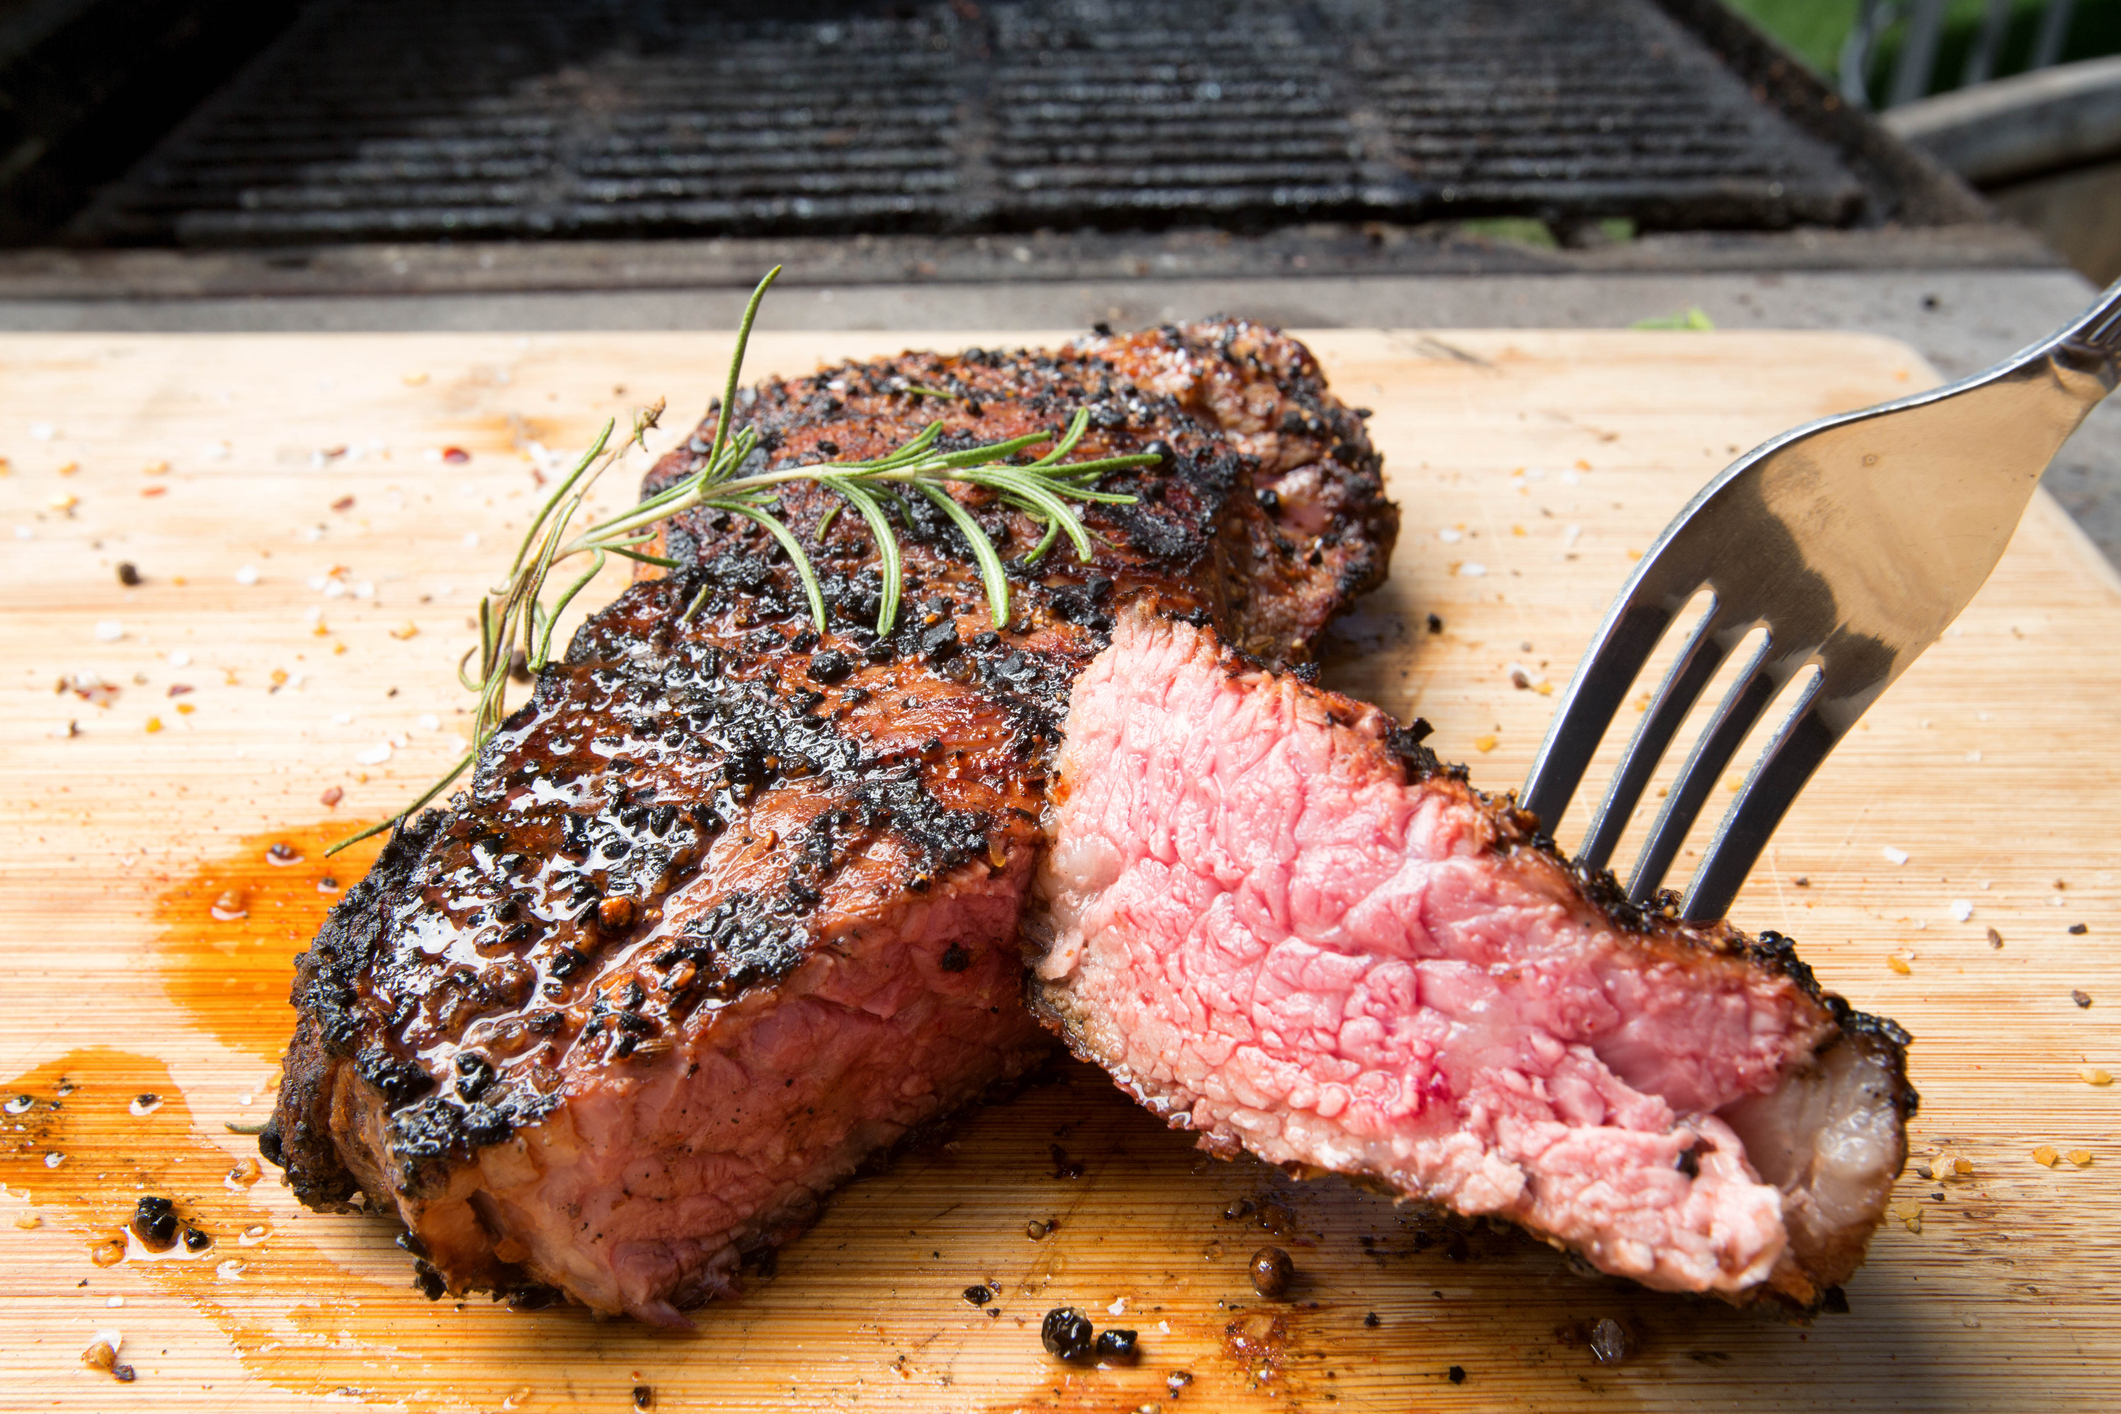 How To Cook A New York Strip Steak Lovetoknow